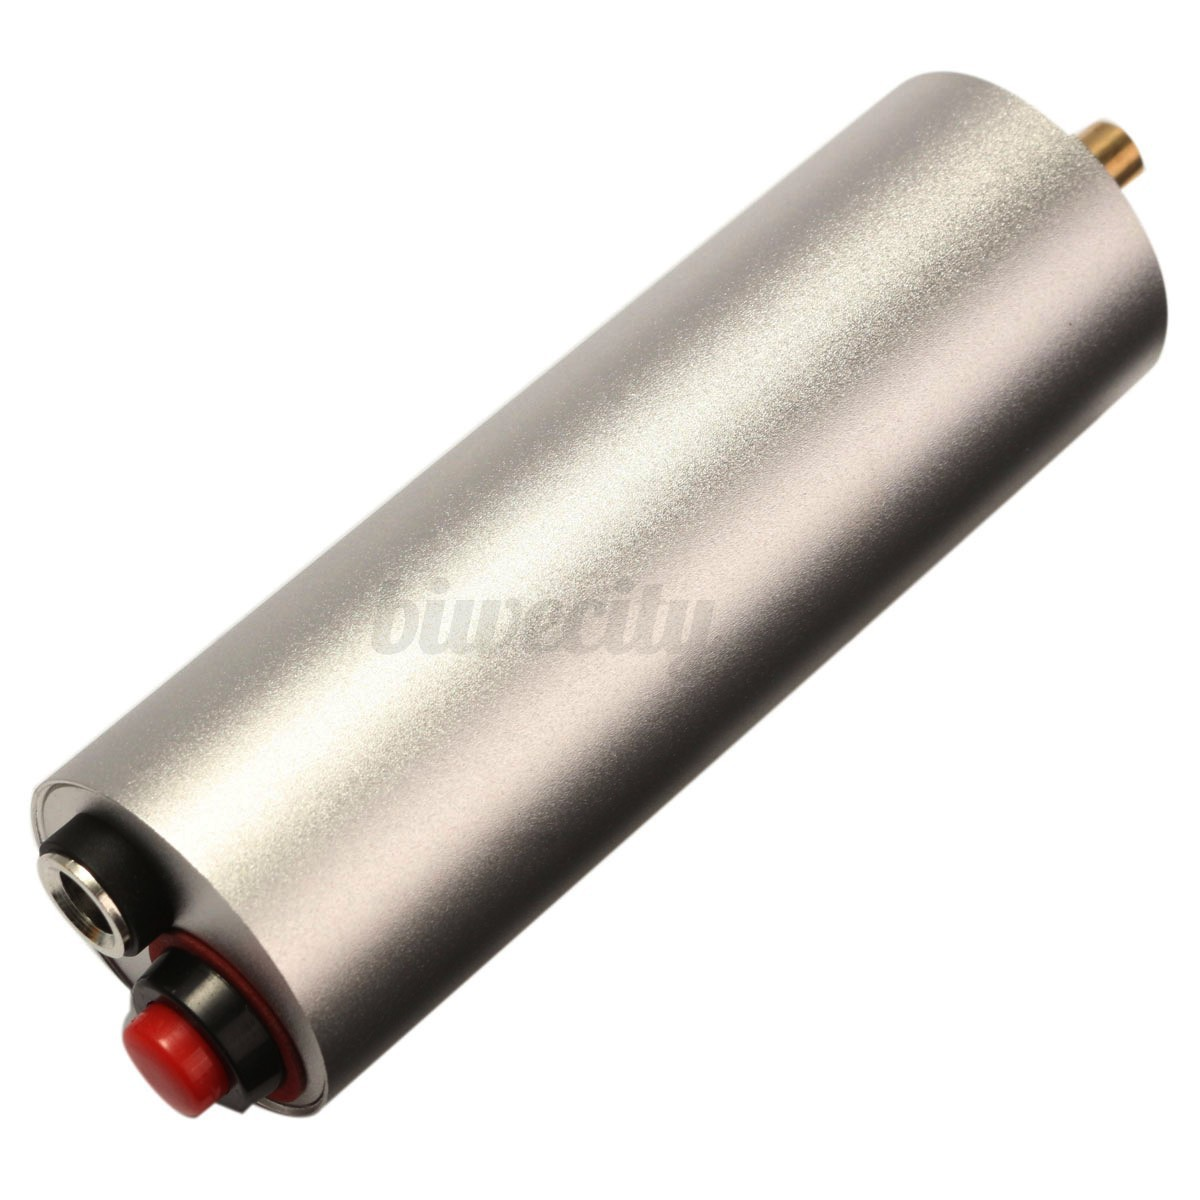 Diy Mini Electric Hand Drill 6v 24v 385 Dc Motor With Jt0